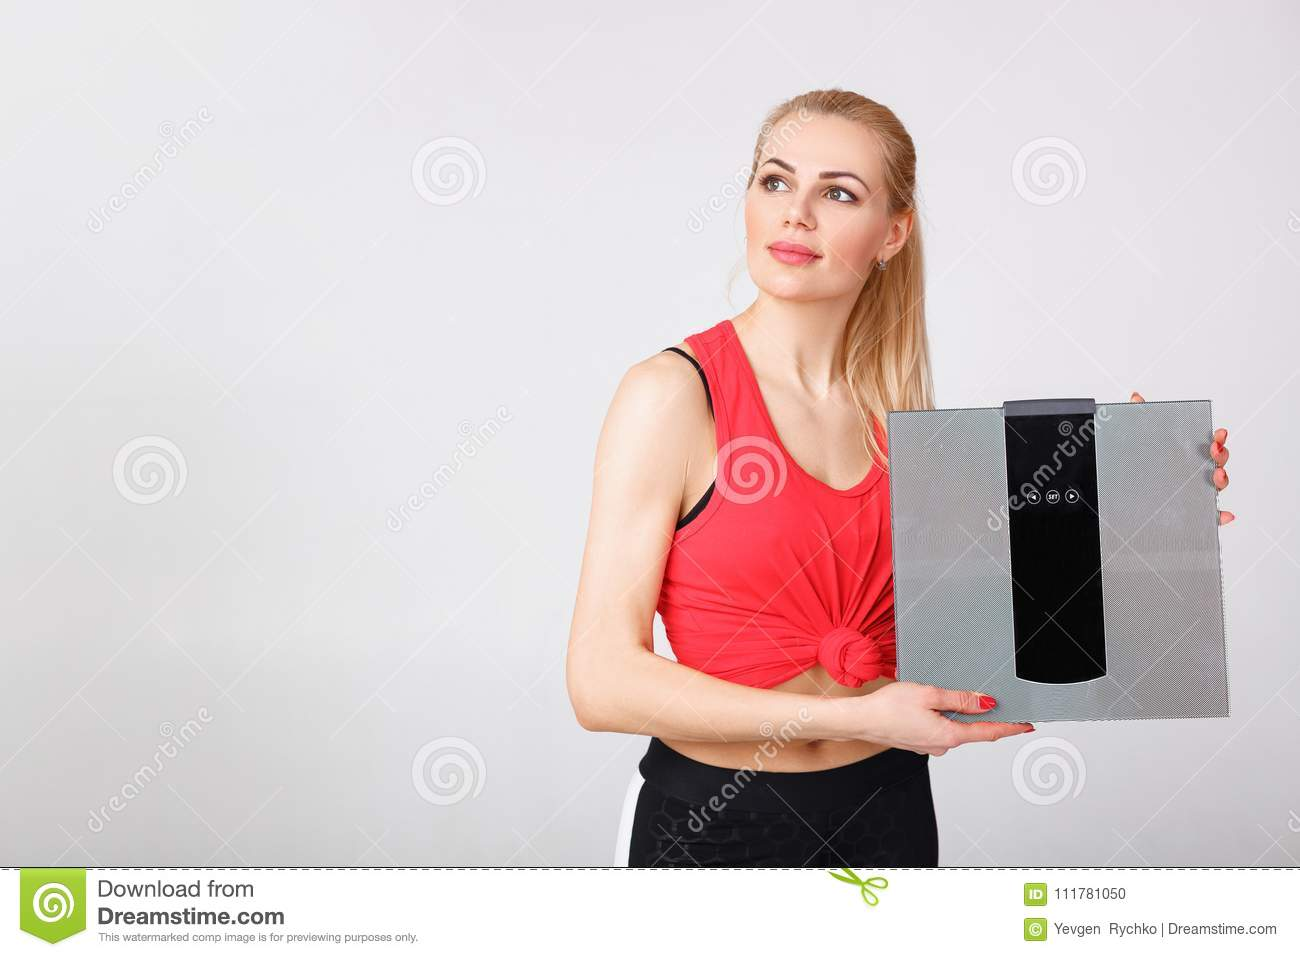 Woman holding scales in hands